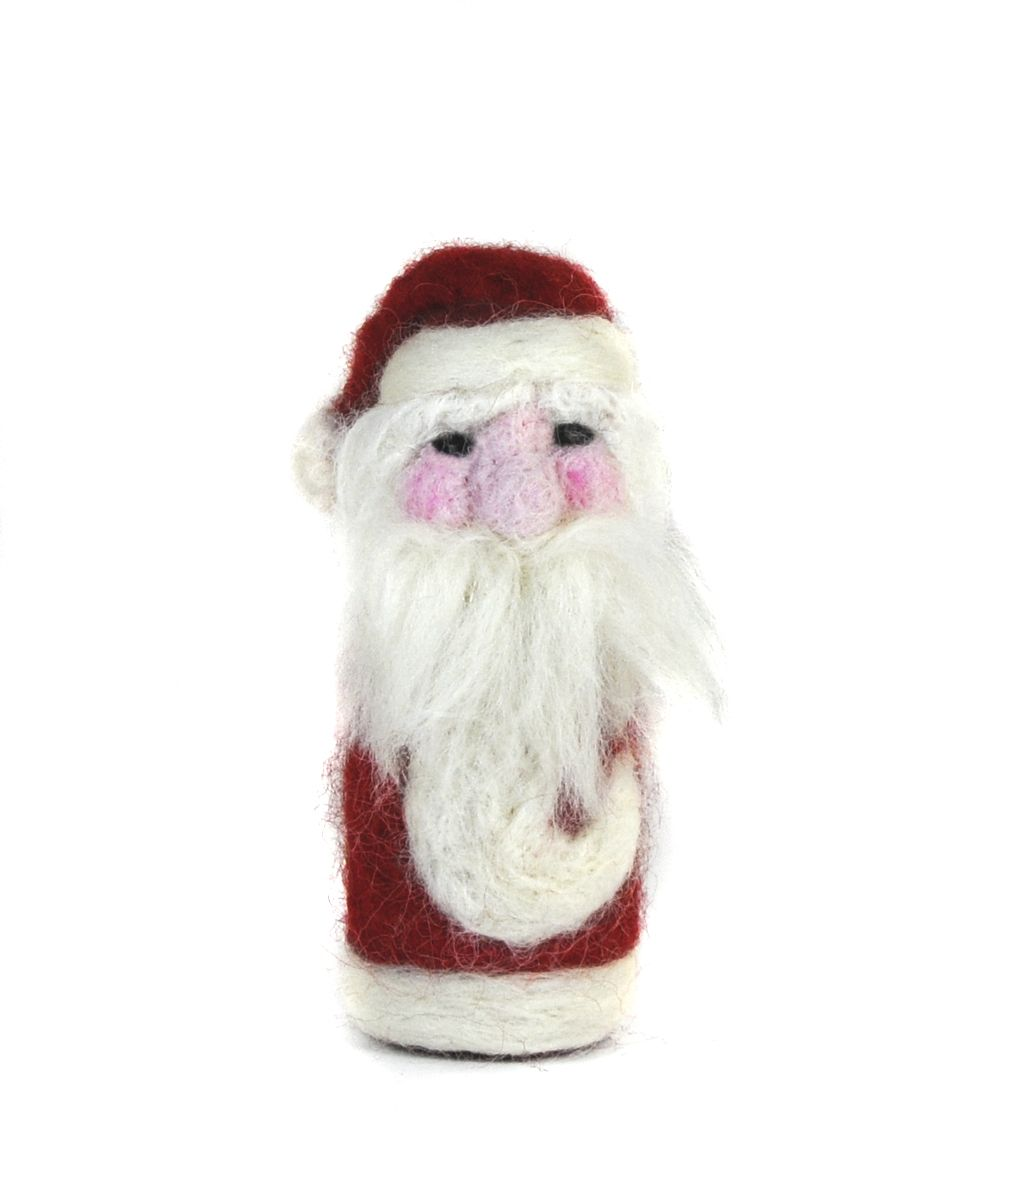 Lil' Santa Alpaca Holiday Ornament